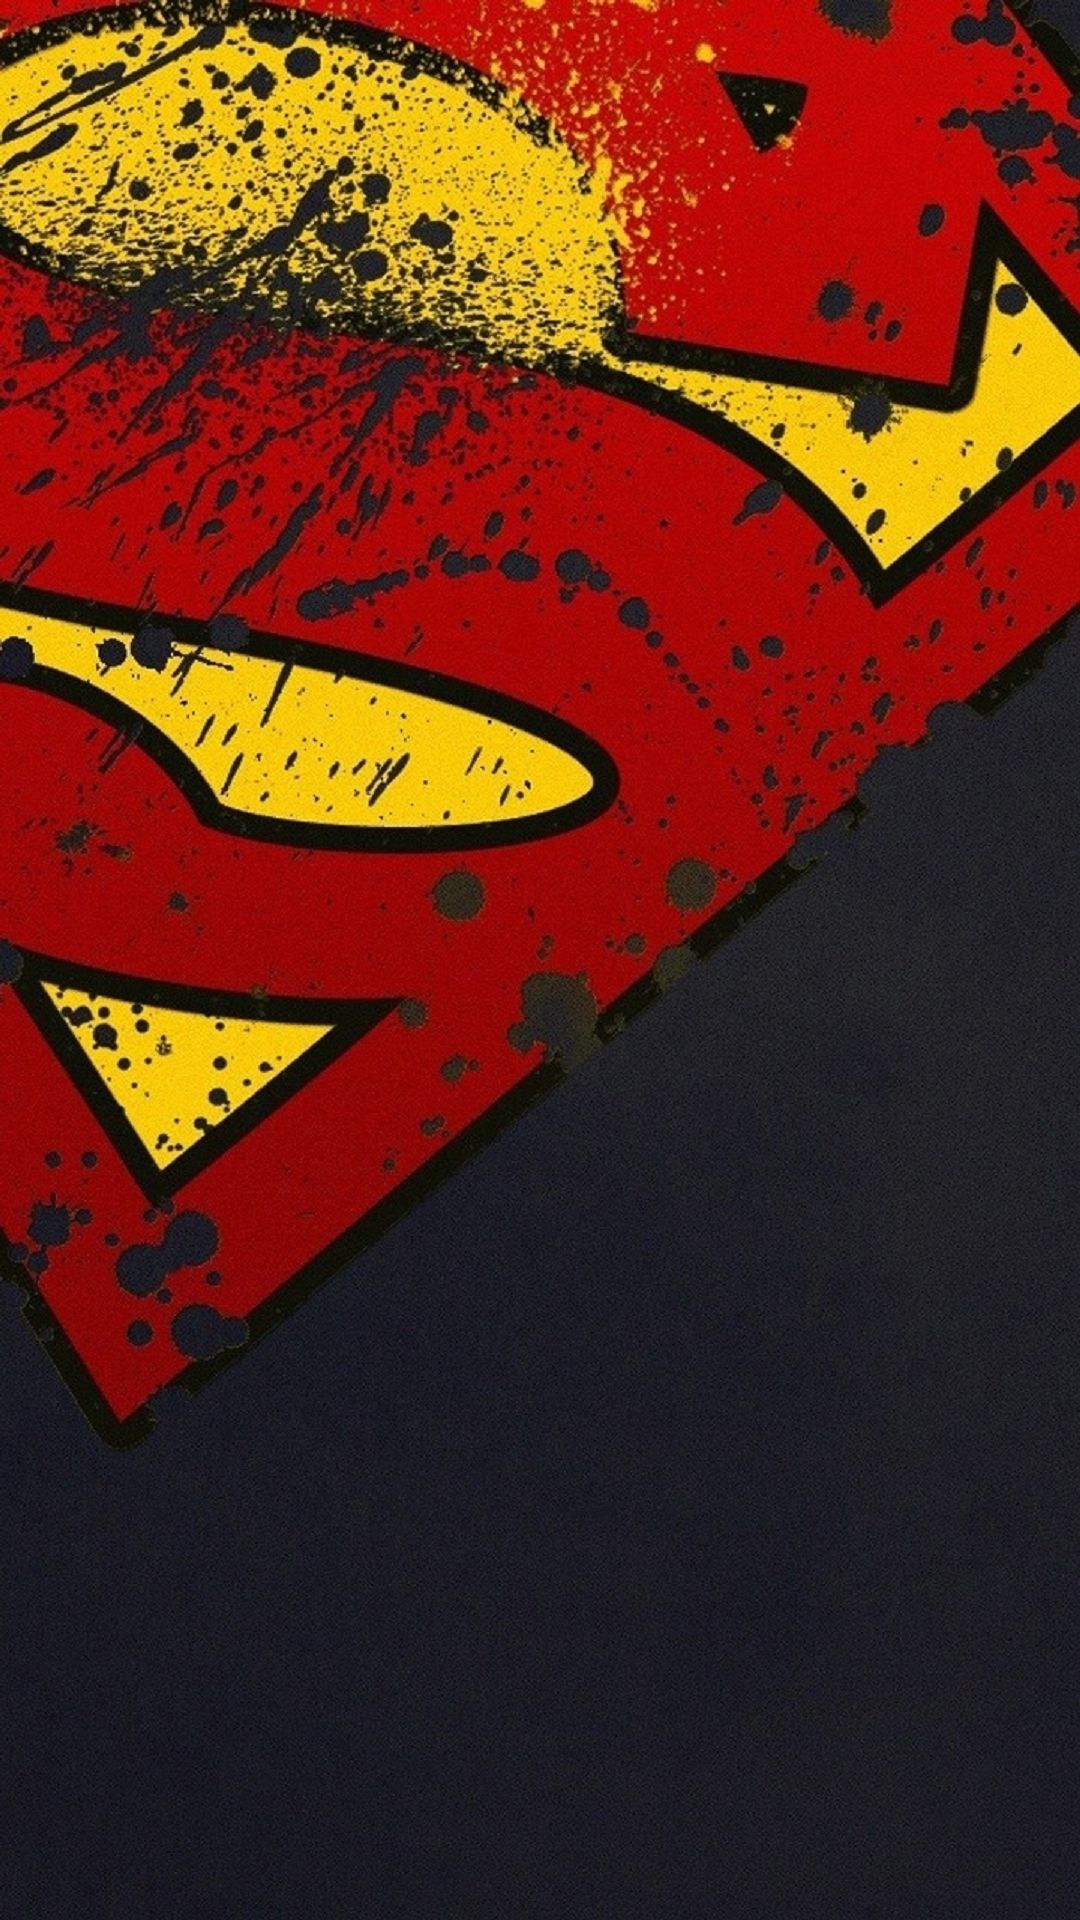 Superman logo hd android wallpaper android hd wallpapers - Wallpapers android hd ...